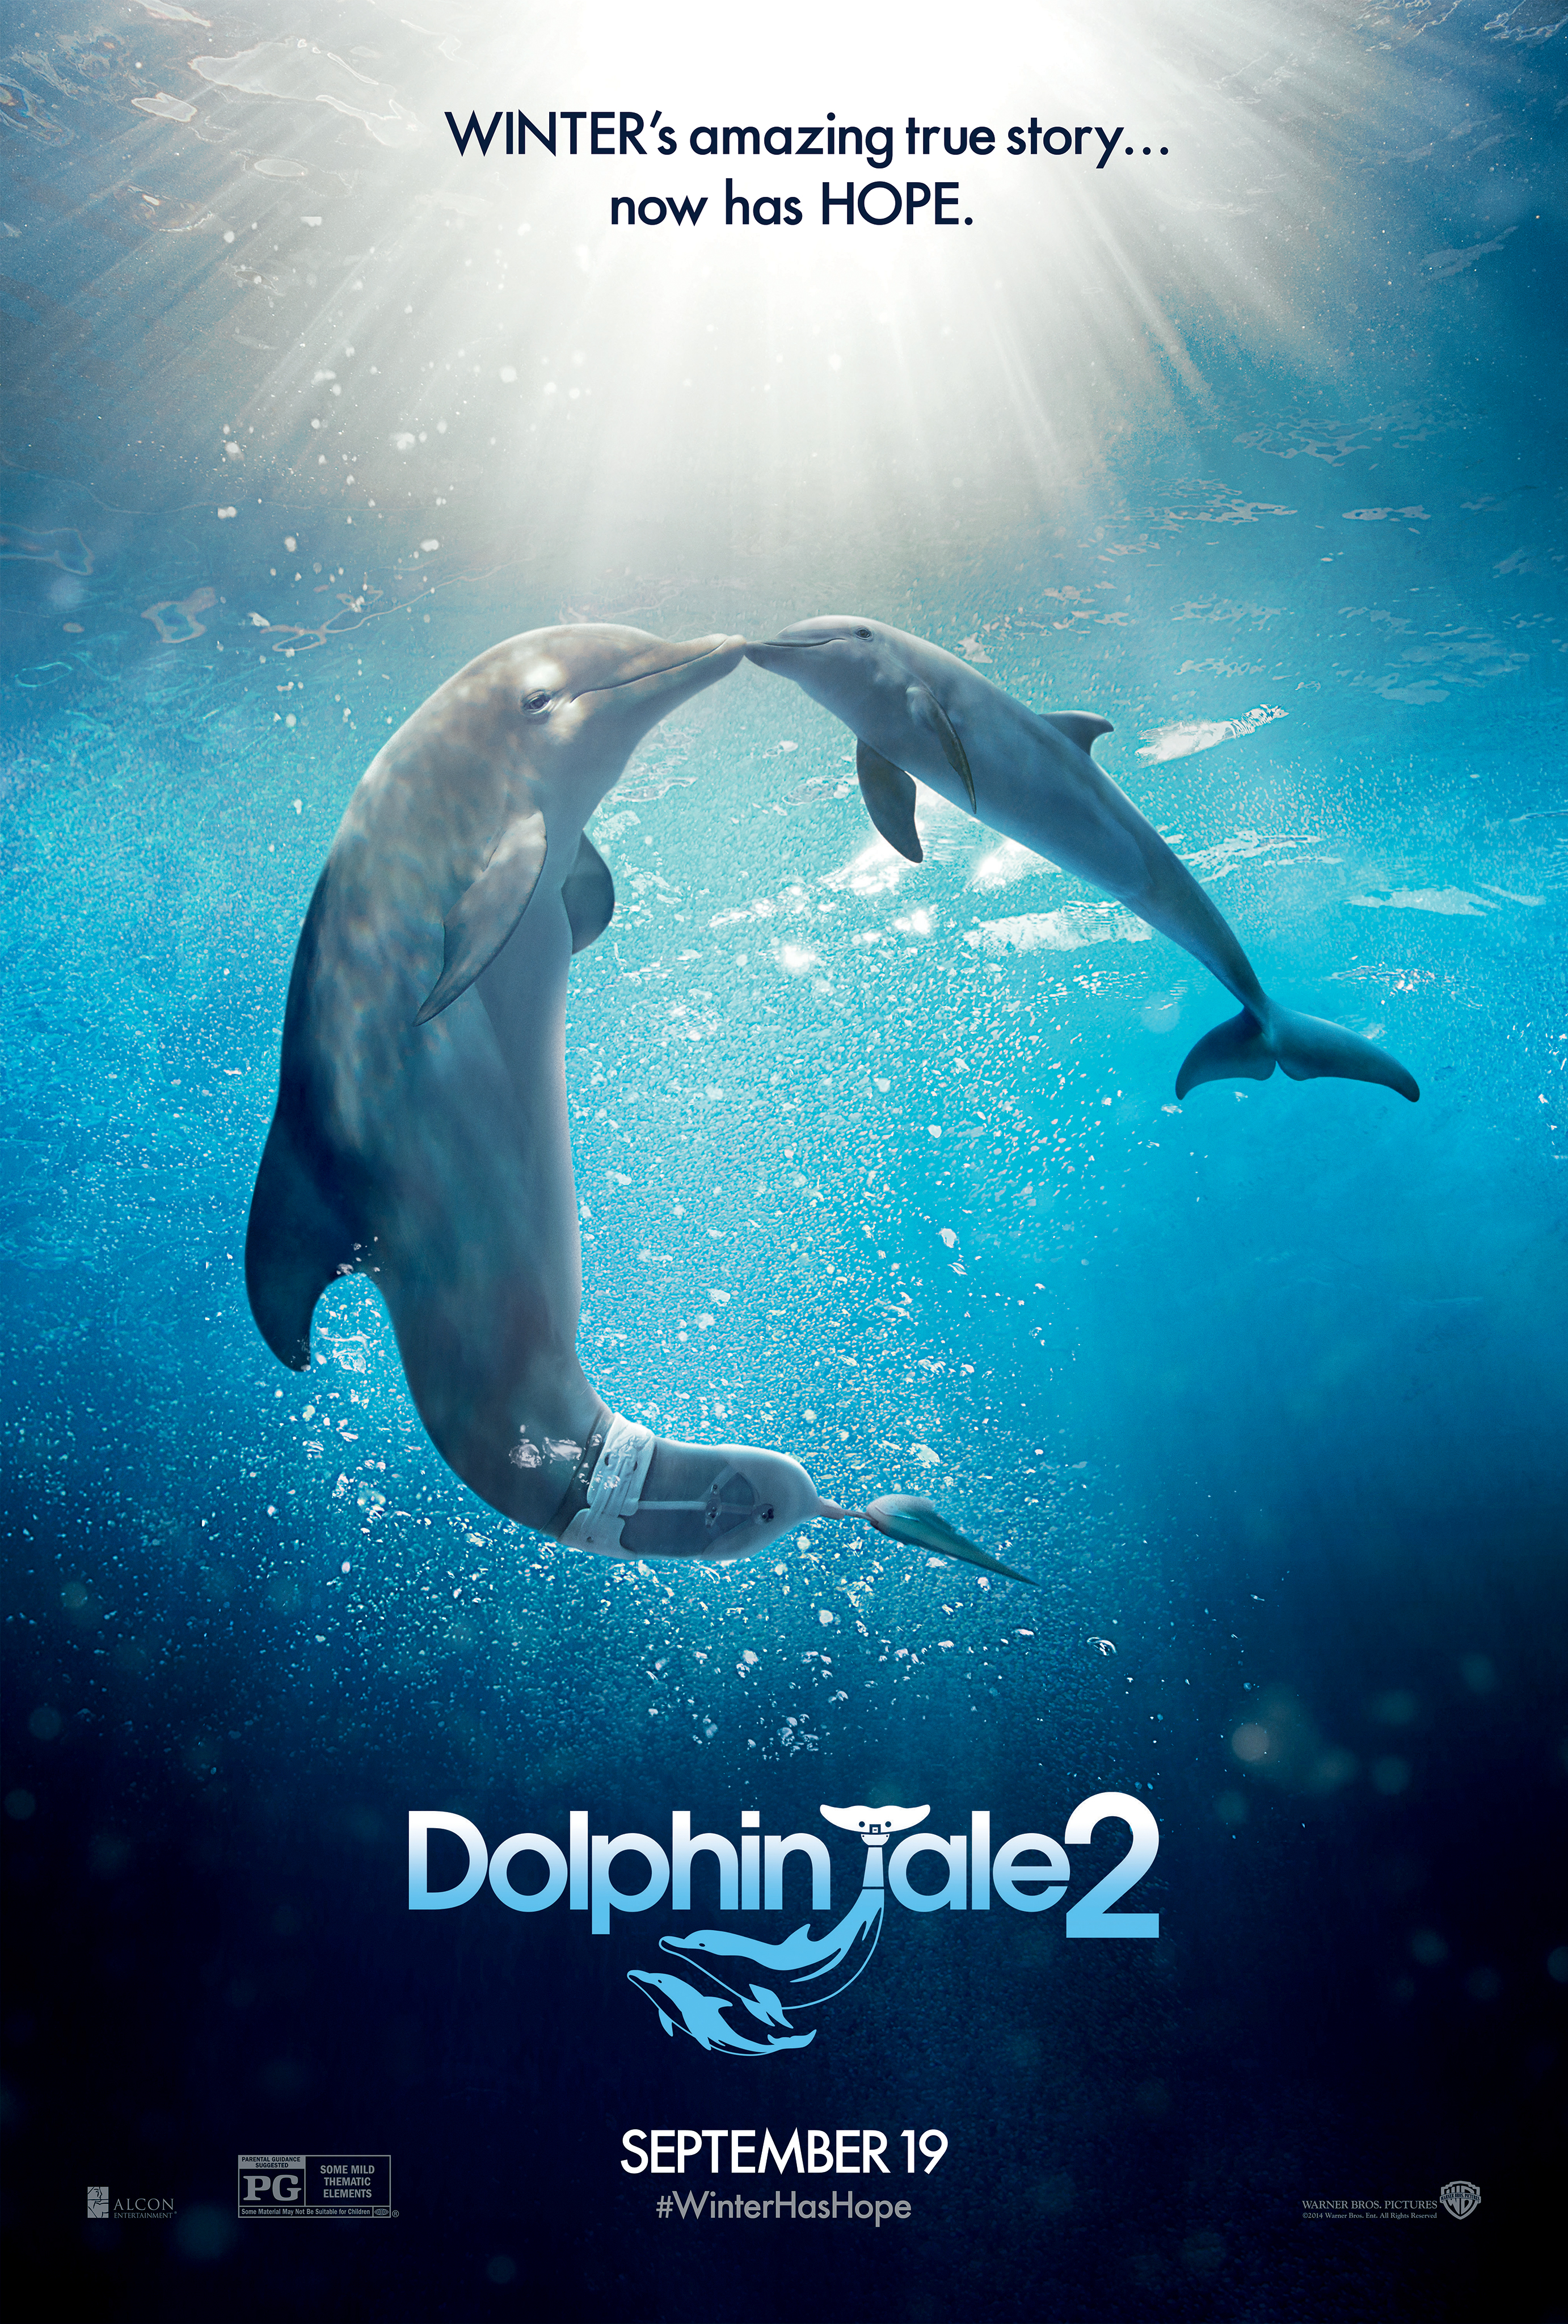 Dolphin's Tale Dolphin Tale 2 will tell